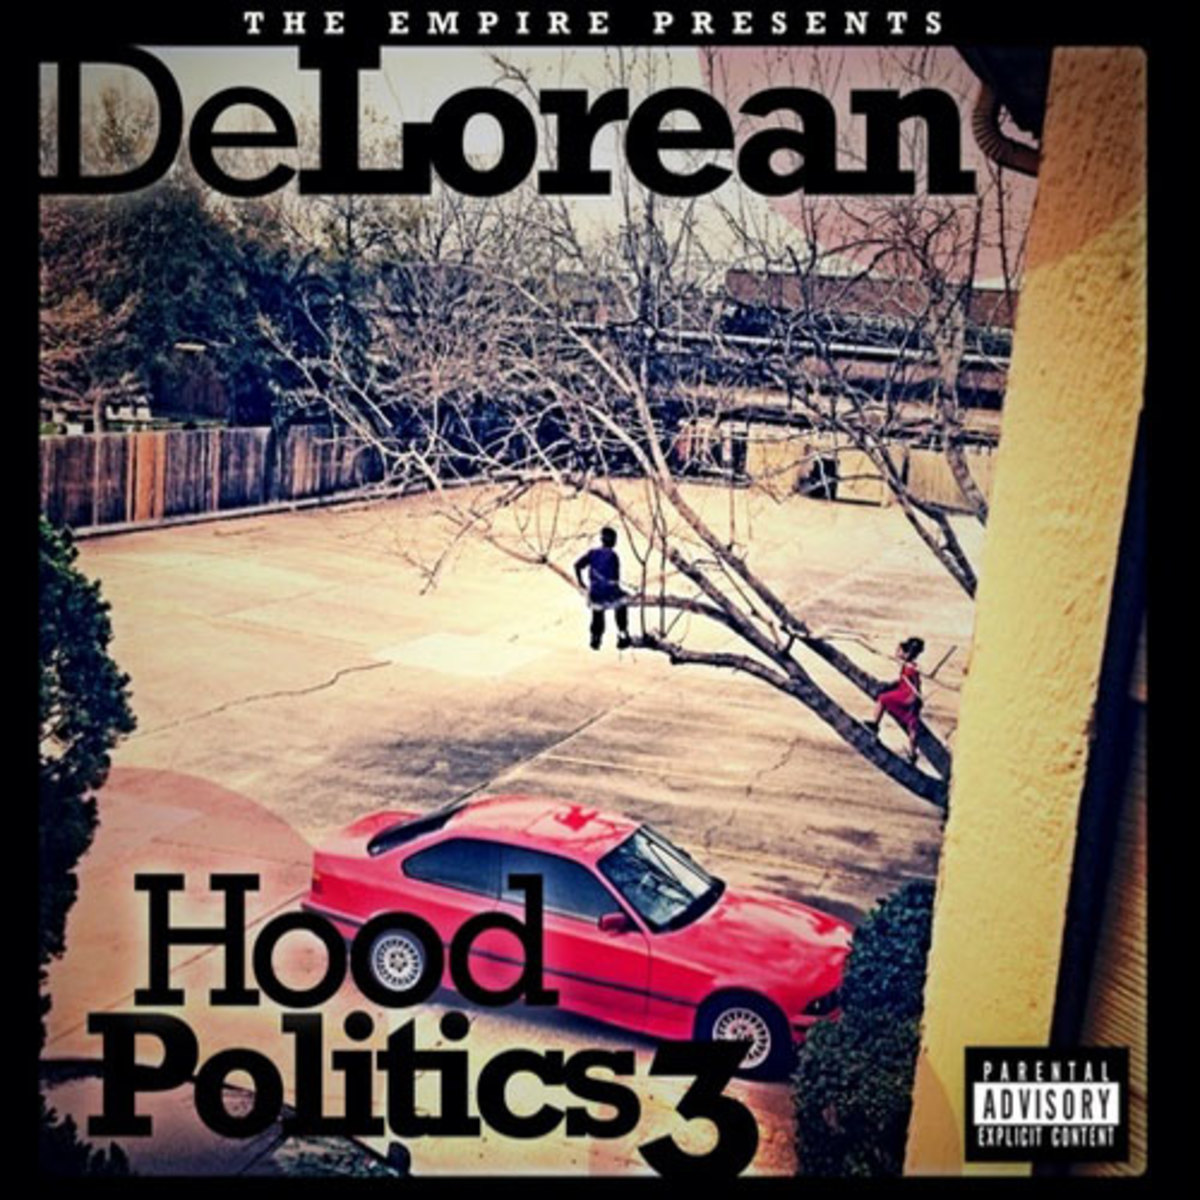 delorean-hoodpolitics3.jpg